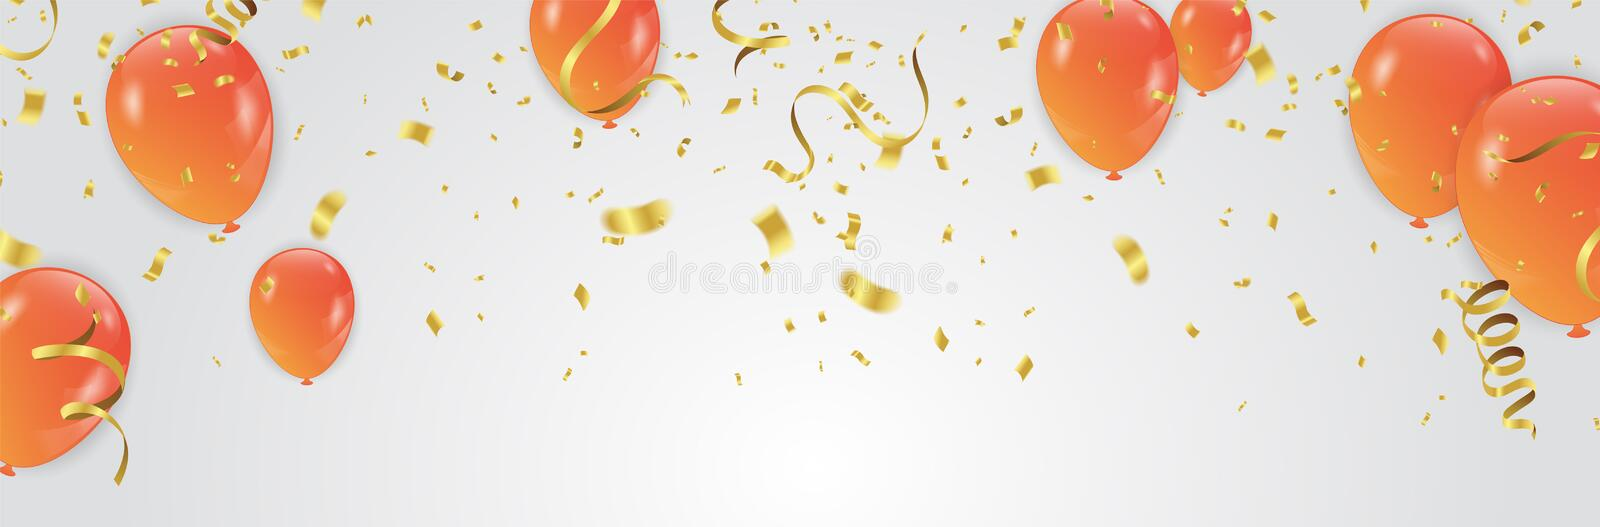 Vector Illustration of Orange Balloons celebration background te stock illustration